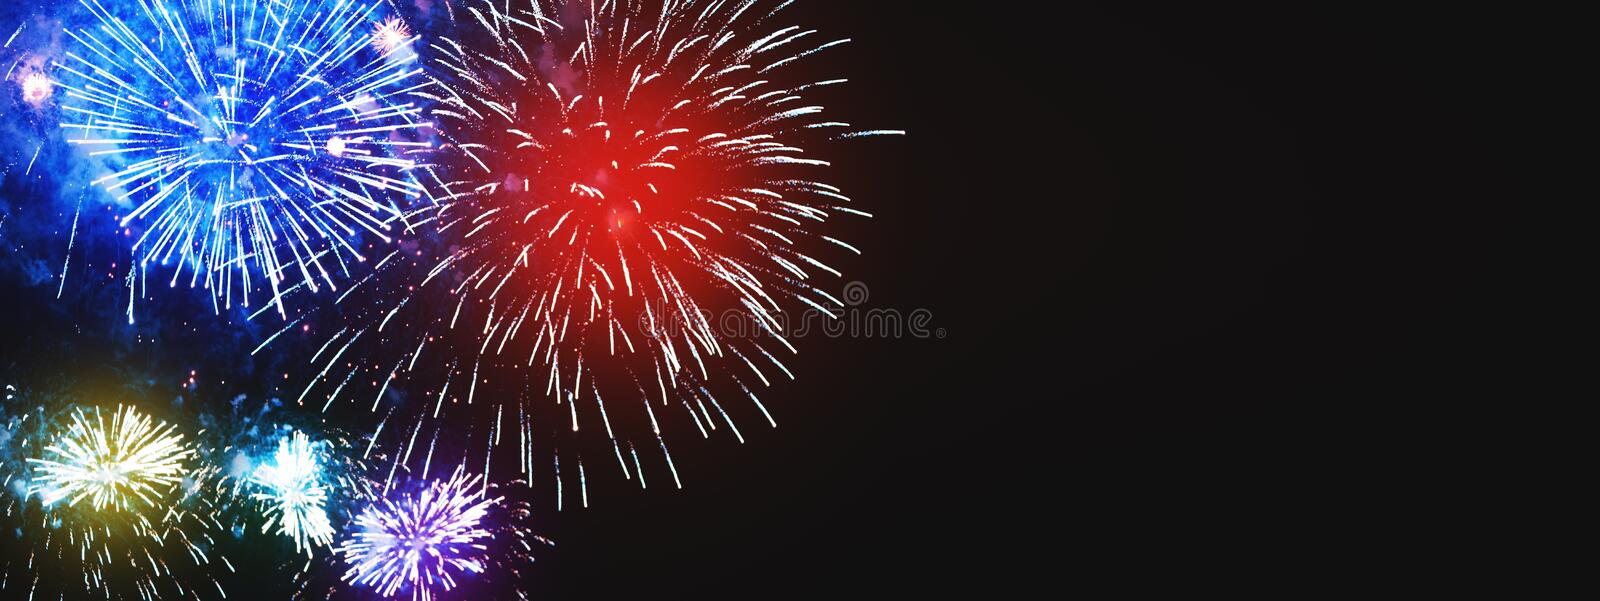 Amazing colorful firework background with free space for text. B stock photo